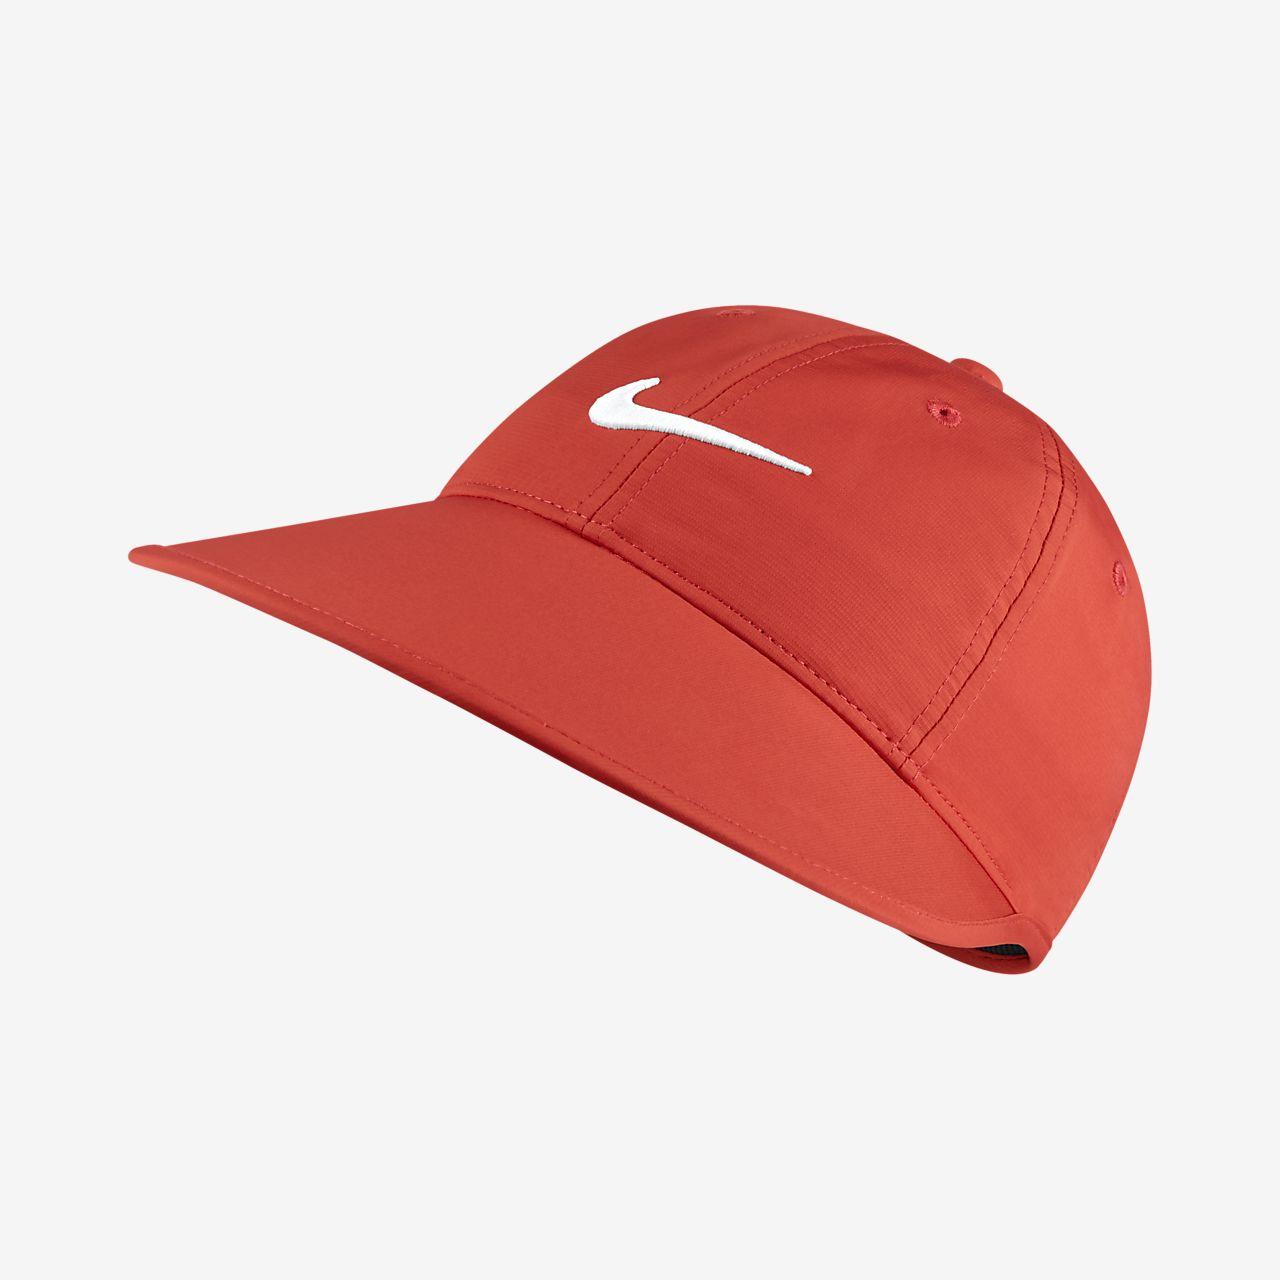 Nike Big Bill Women's Adjustable Golf Hat